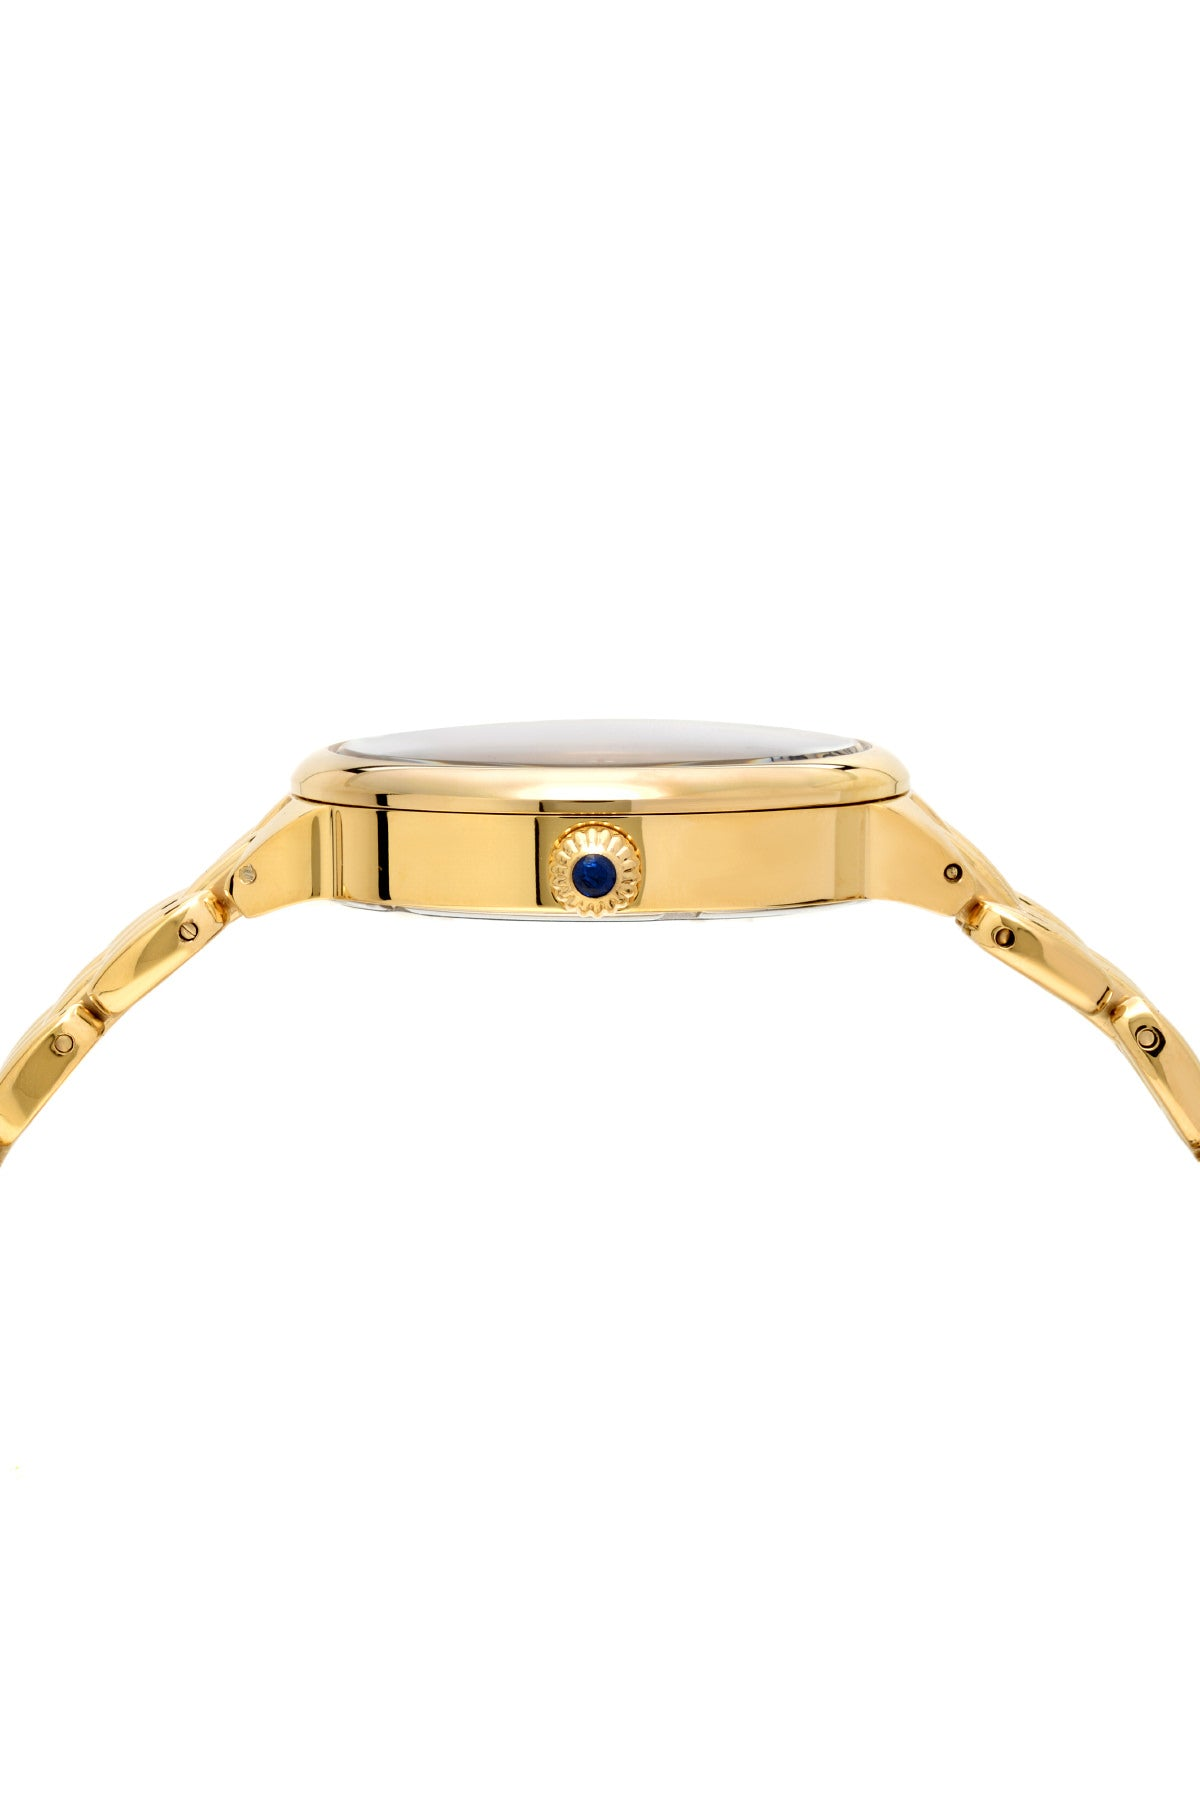 Porsamo Bleu Claire luxury diamond women's stainless steel watch, gold, black 722BCLS